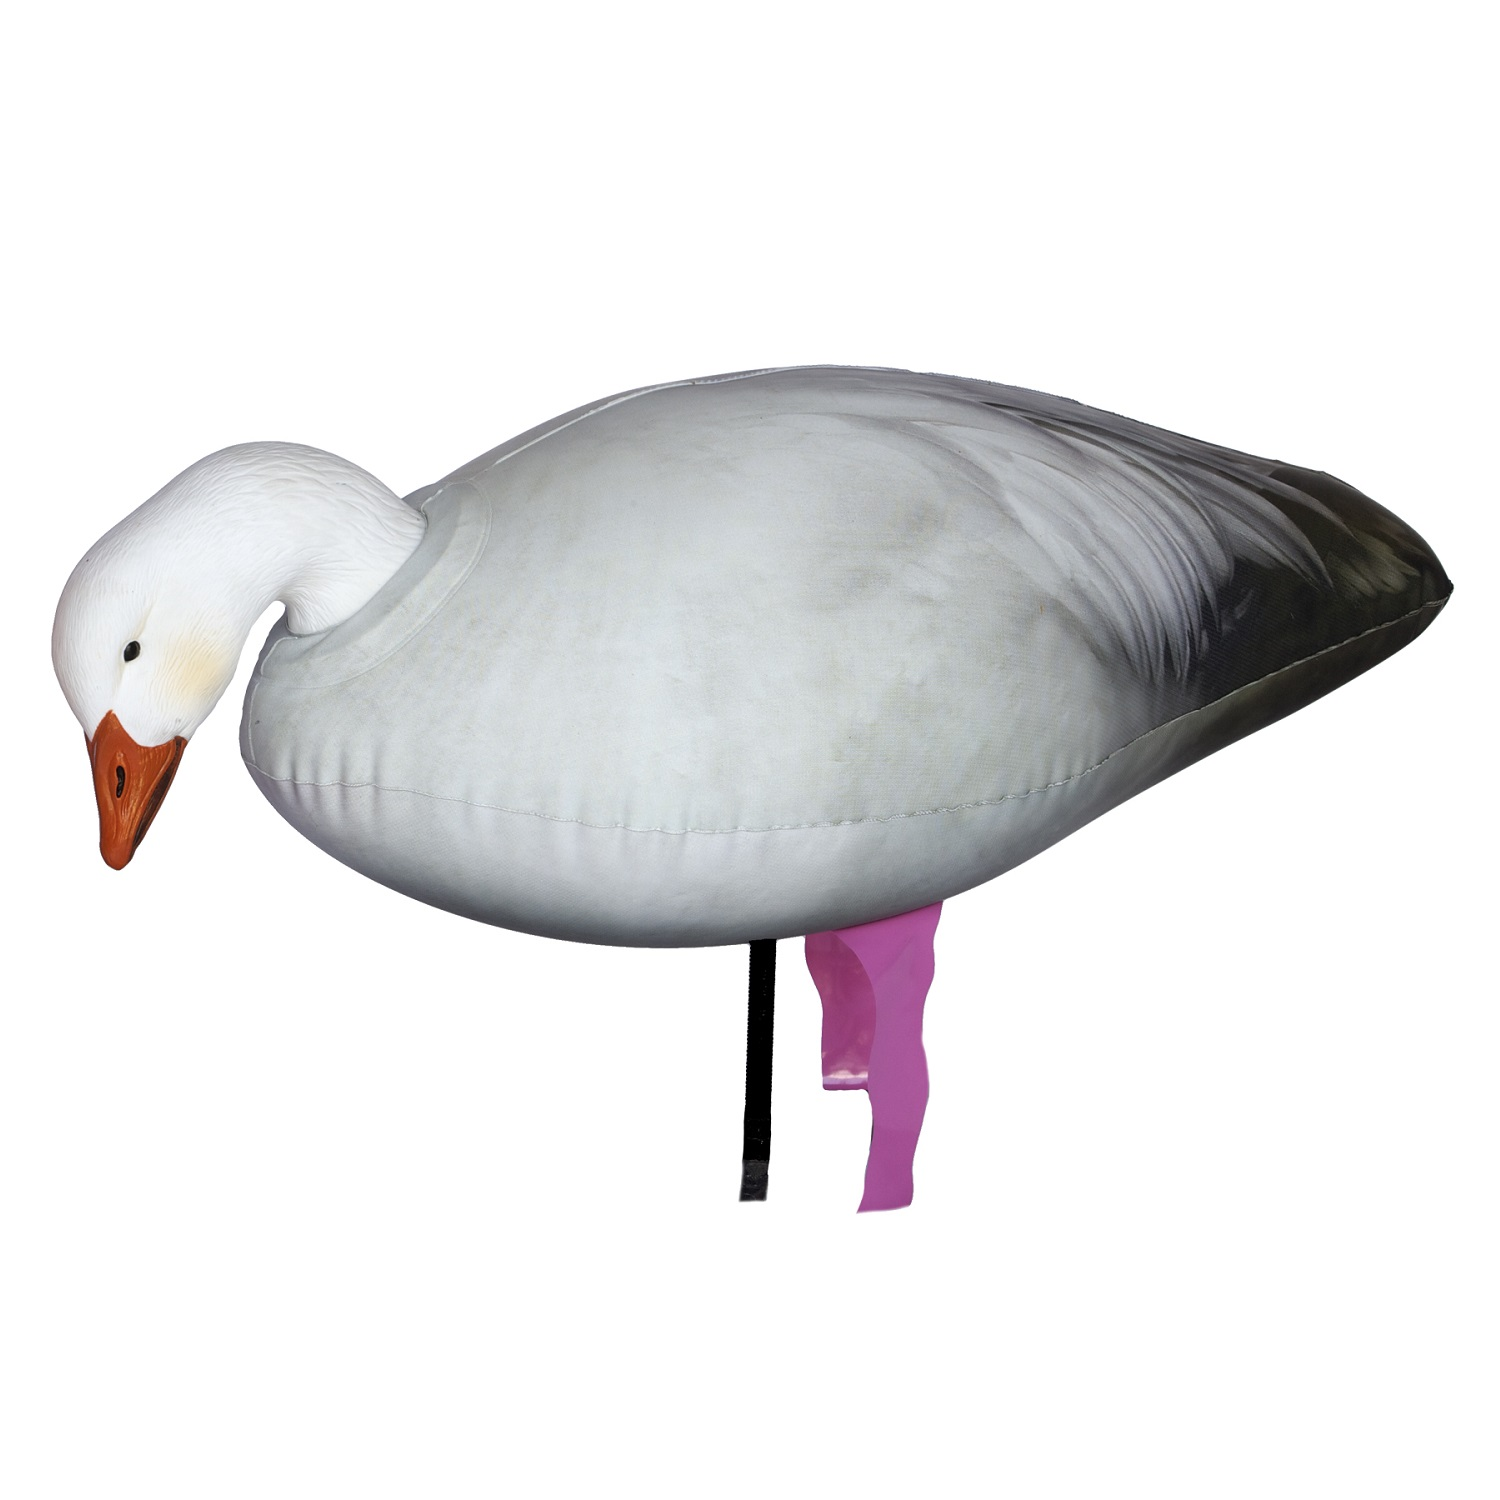 Image of Cherokee Sports Full Bodied Snow/Blue Goose Decoys, 6-Pack